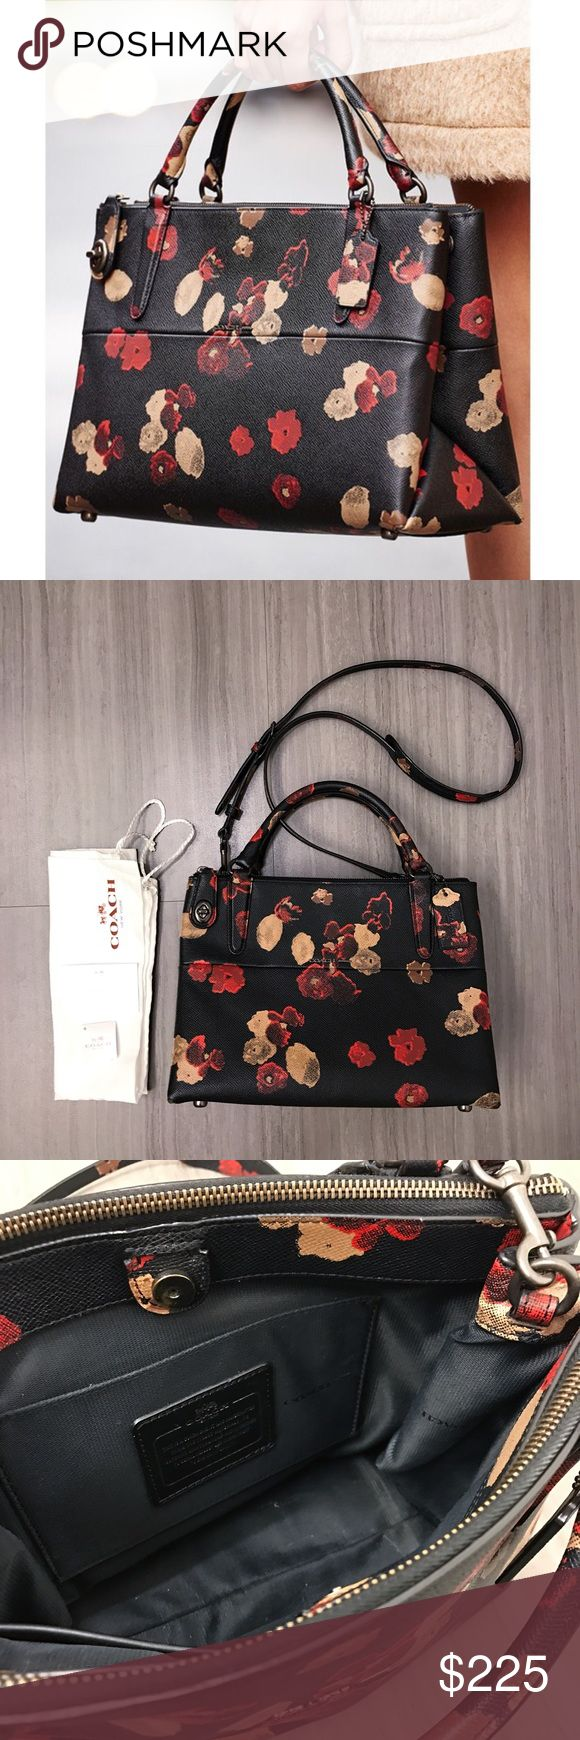 Coach Bourough bag Absolutely BEAUTIFUL Borough bag in floral leather from Coach. In excellent condition! Comes with dust bag and care card. Coach Bags